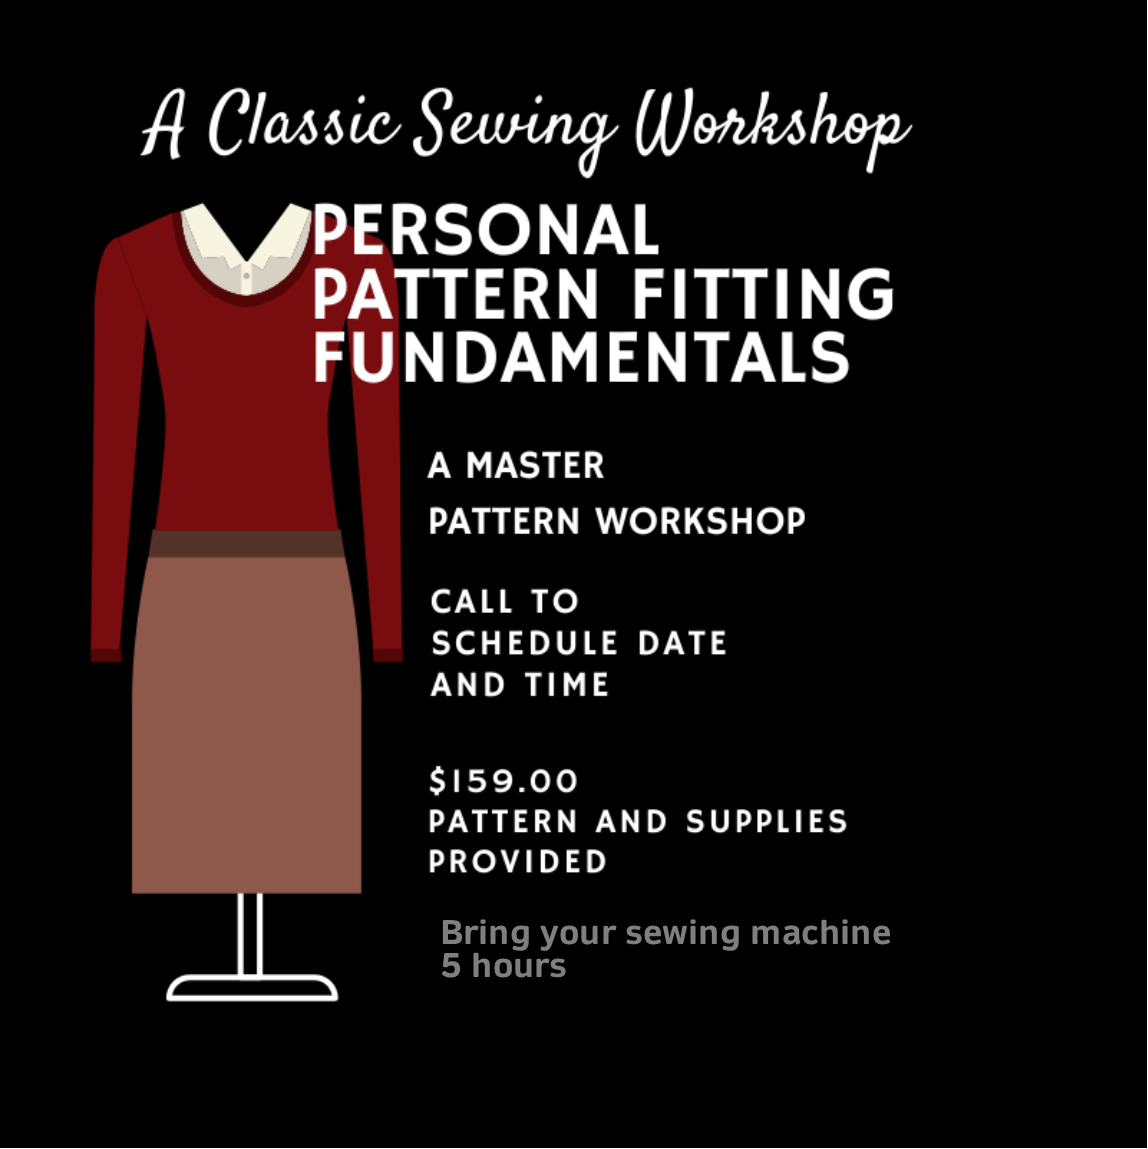 Personal Pattern Fitting Fundamentals